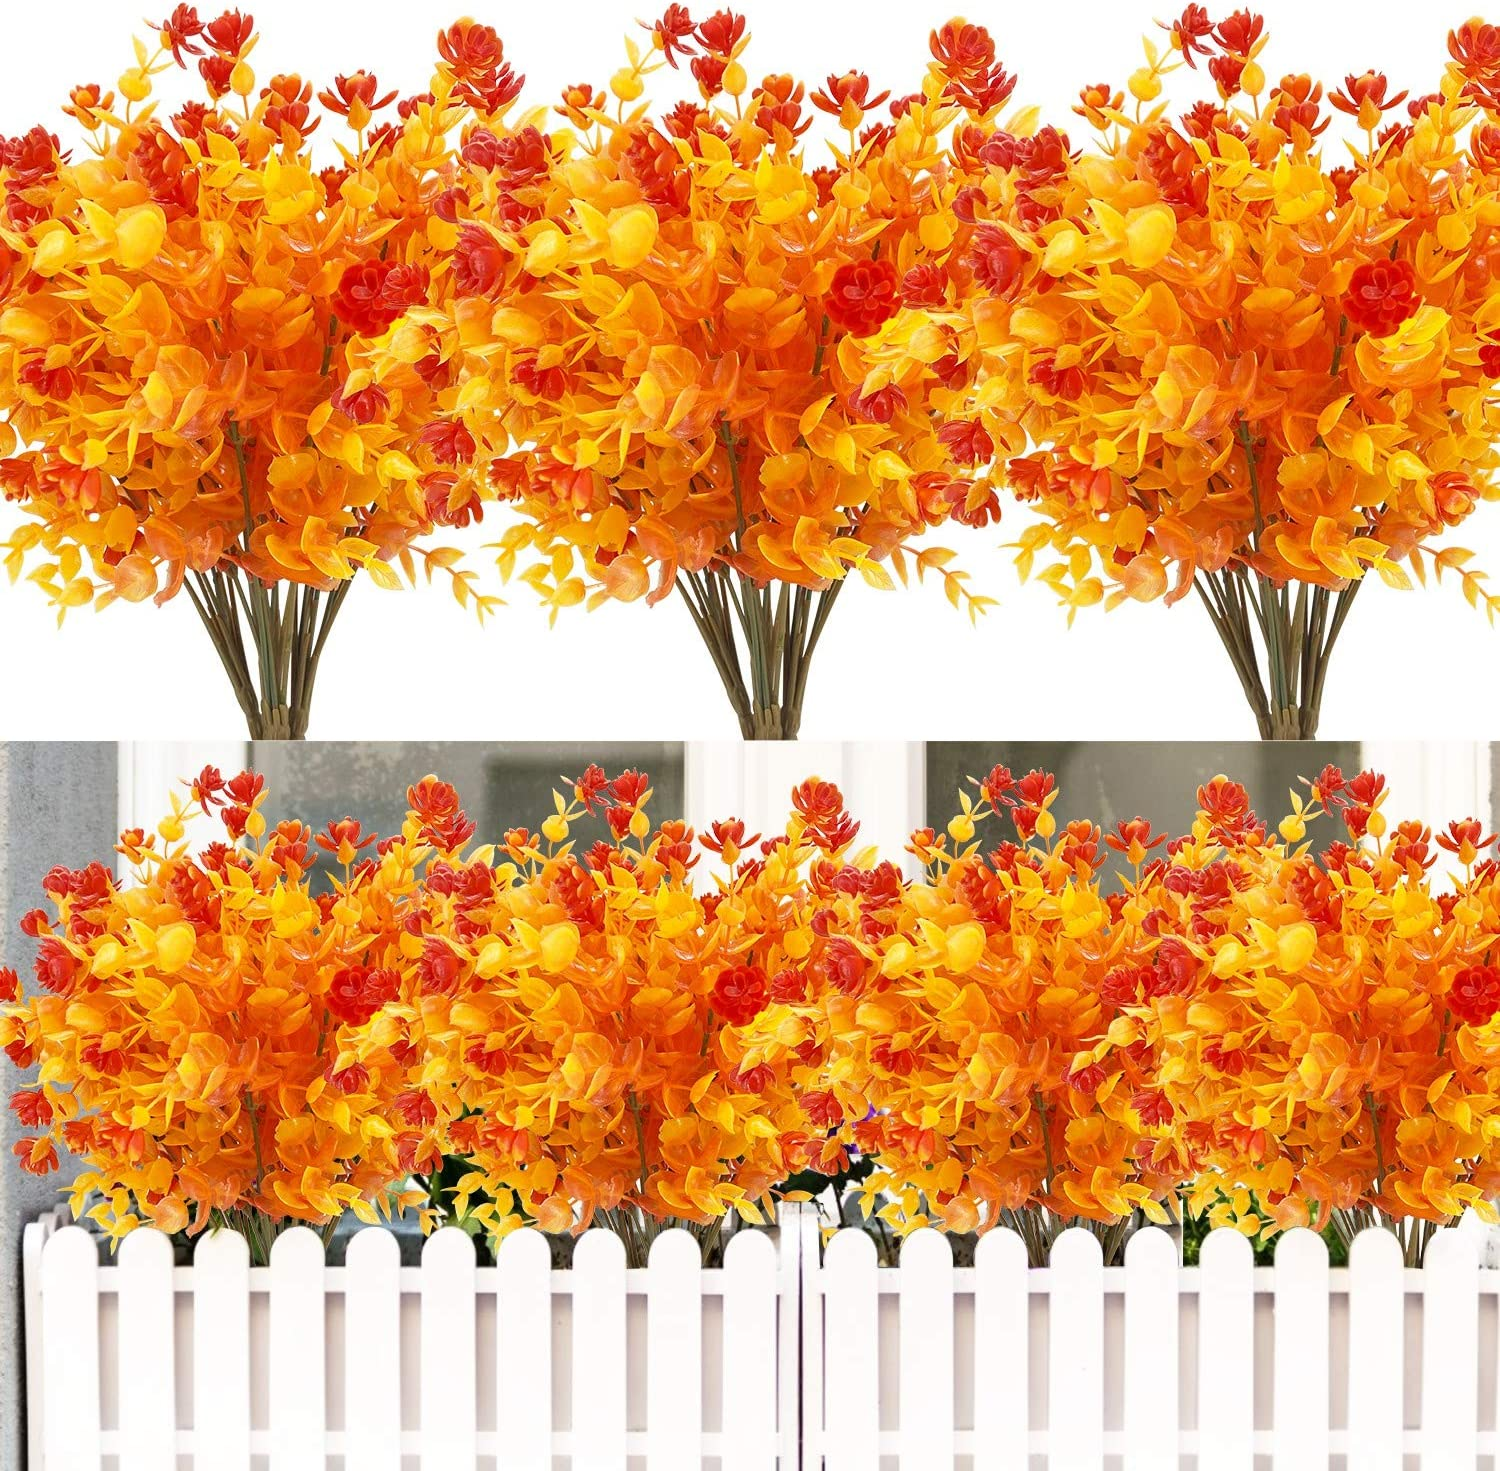 8PCS Artificial Flowers Outdoor UV Resistant Plants, 8 Branches Faux Plastic Corn-flower Greenery Shrubs Plants Indoor Outside Hanging Planter Kitchen Home Wedding Office Garden Decor (Gold Yellow)